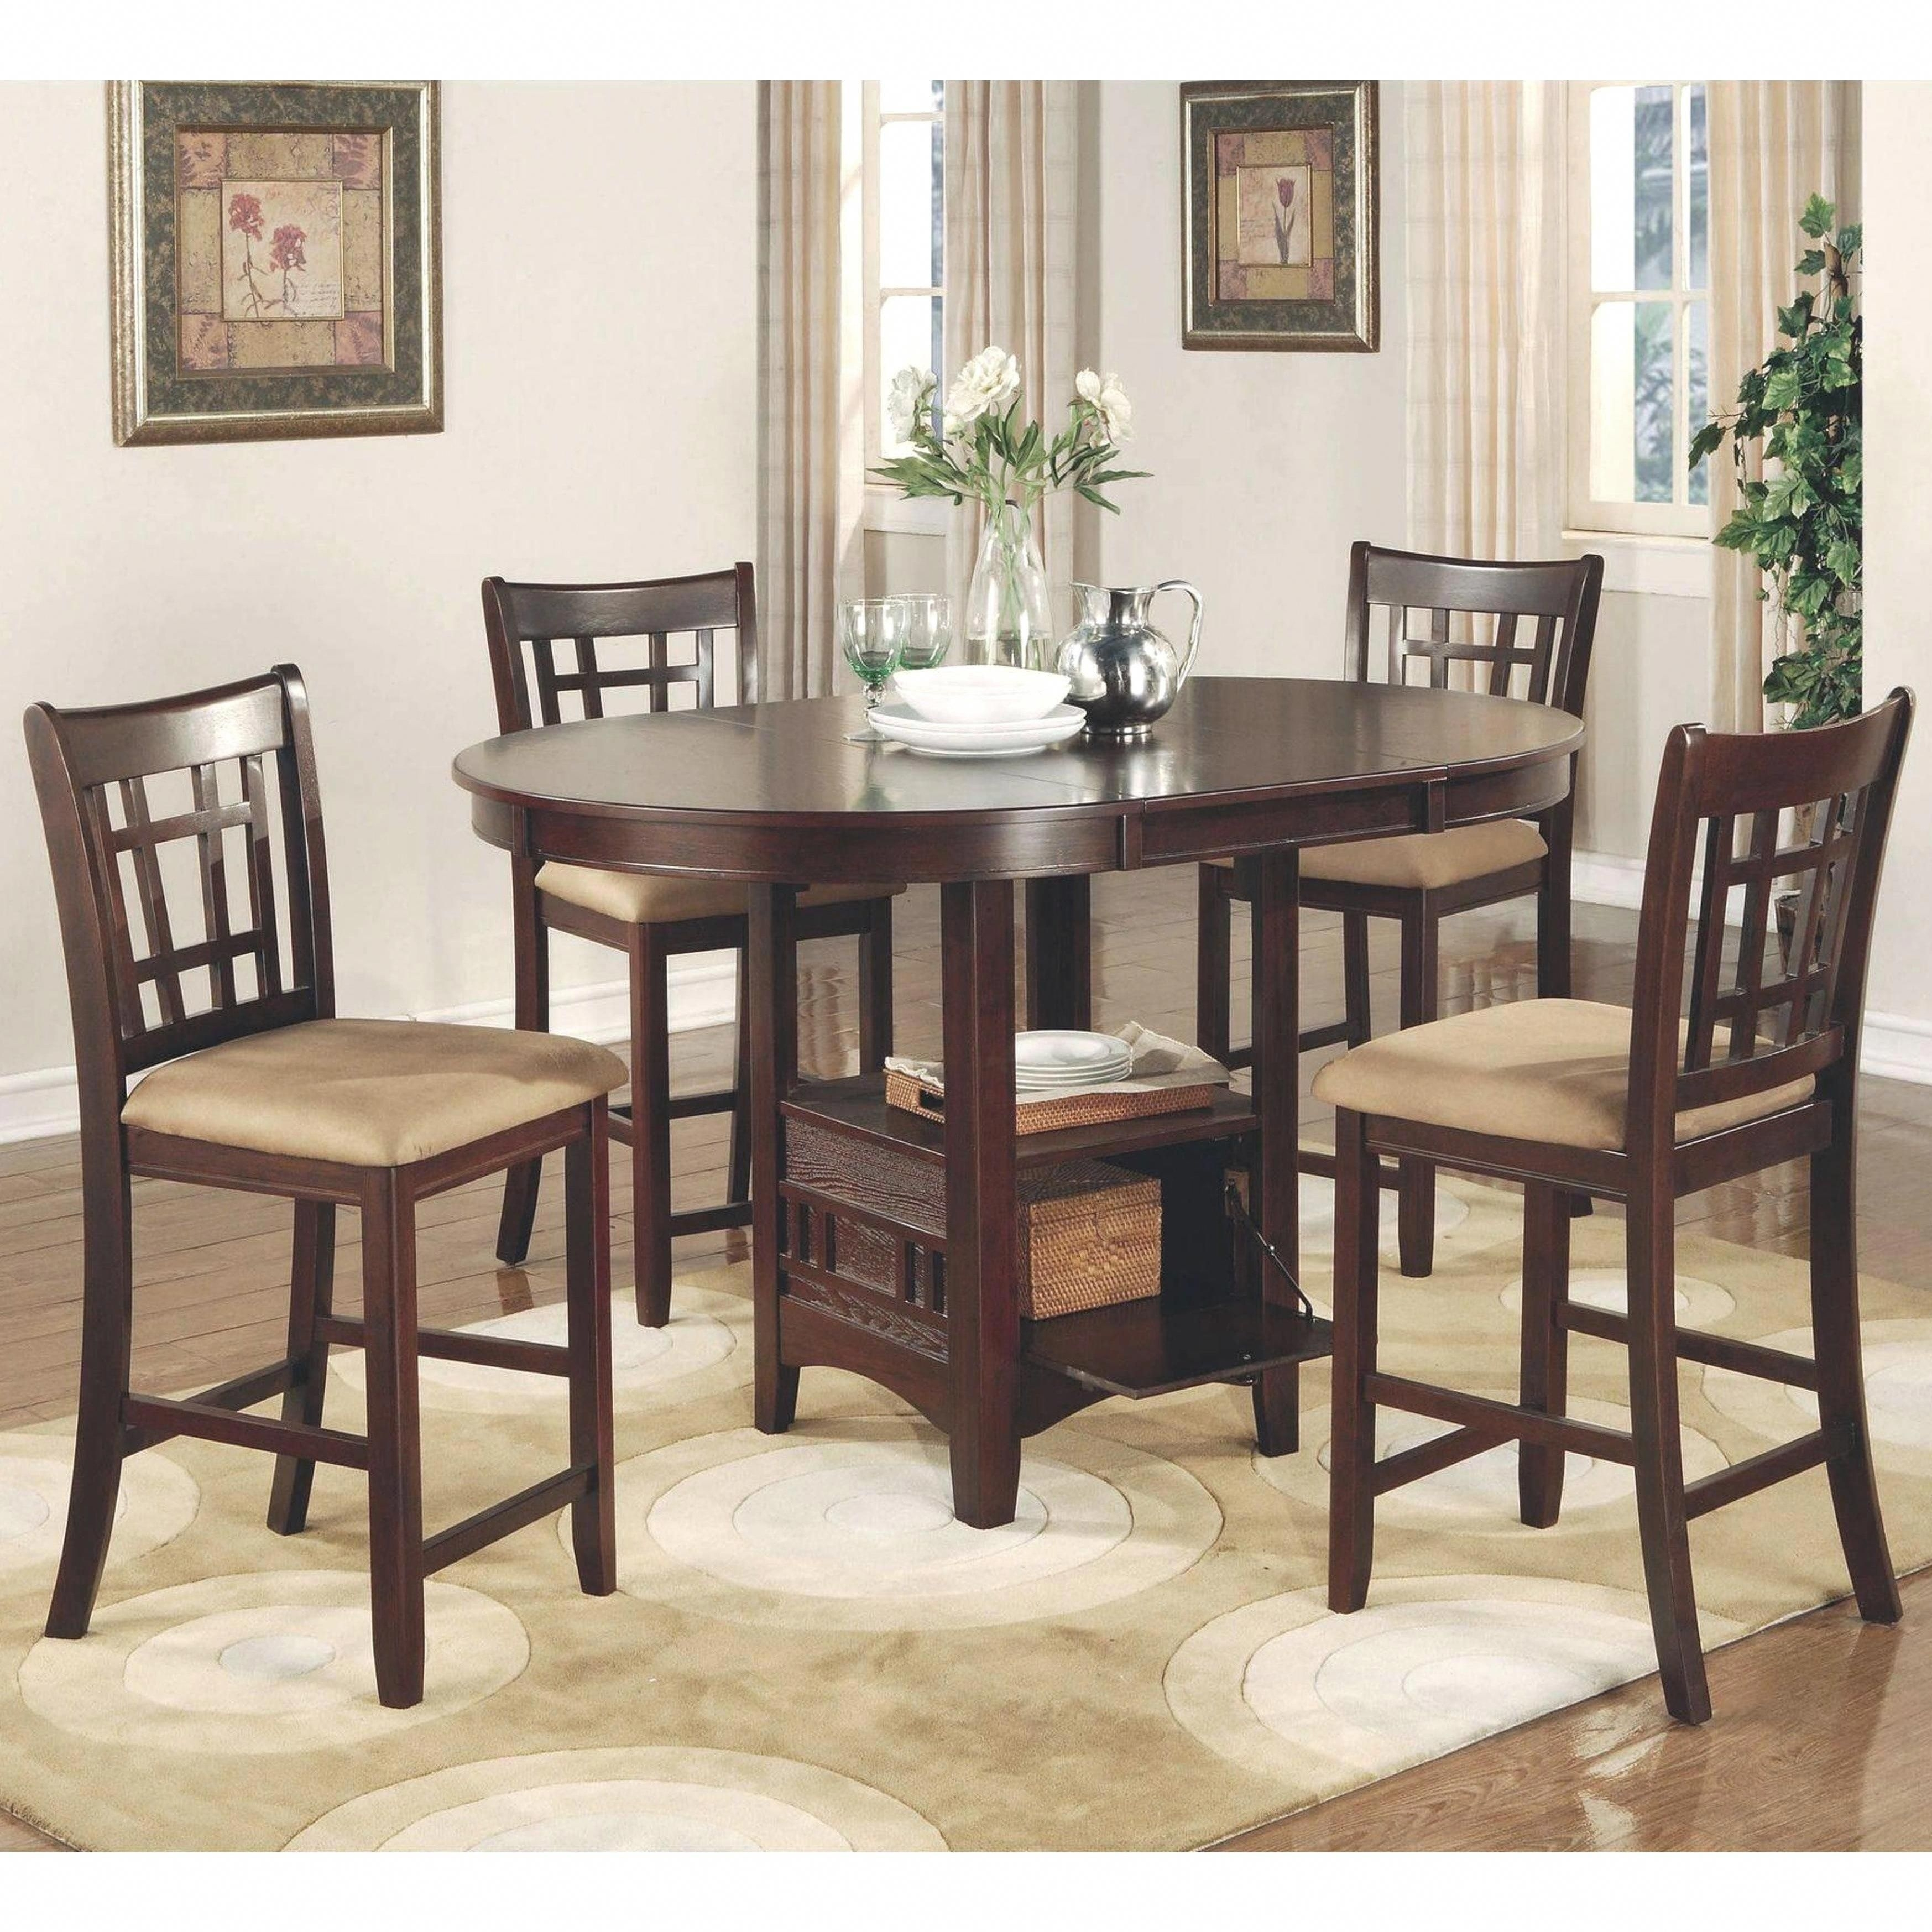 Azalea Warm Brown Counter Height Dining Set (1 Table – 6 Stools Within Best And Newest Craftsman 7 Piece Rectangle Extension Dining Sets With Uph Side Chairs (Image 4 of 20)